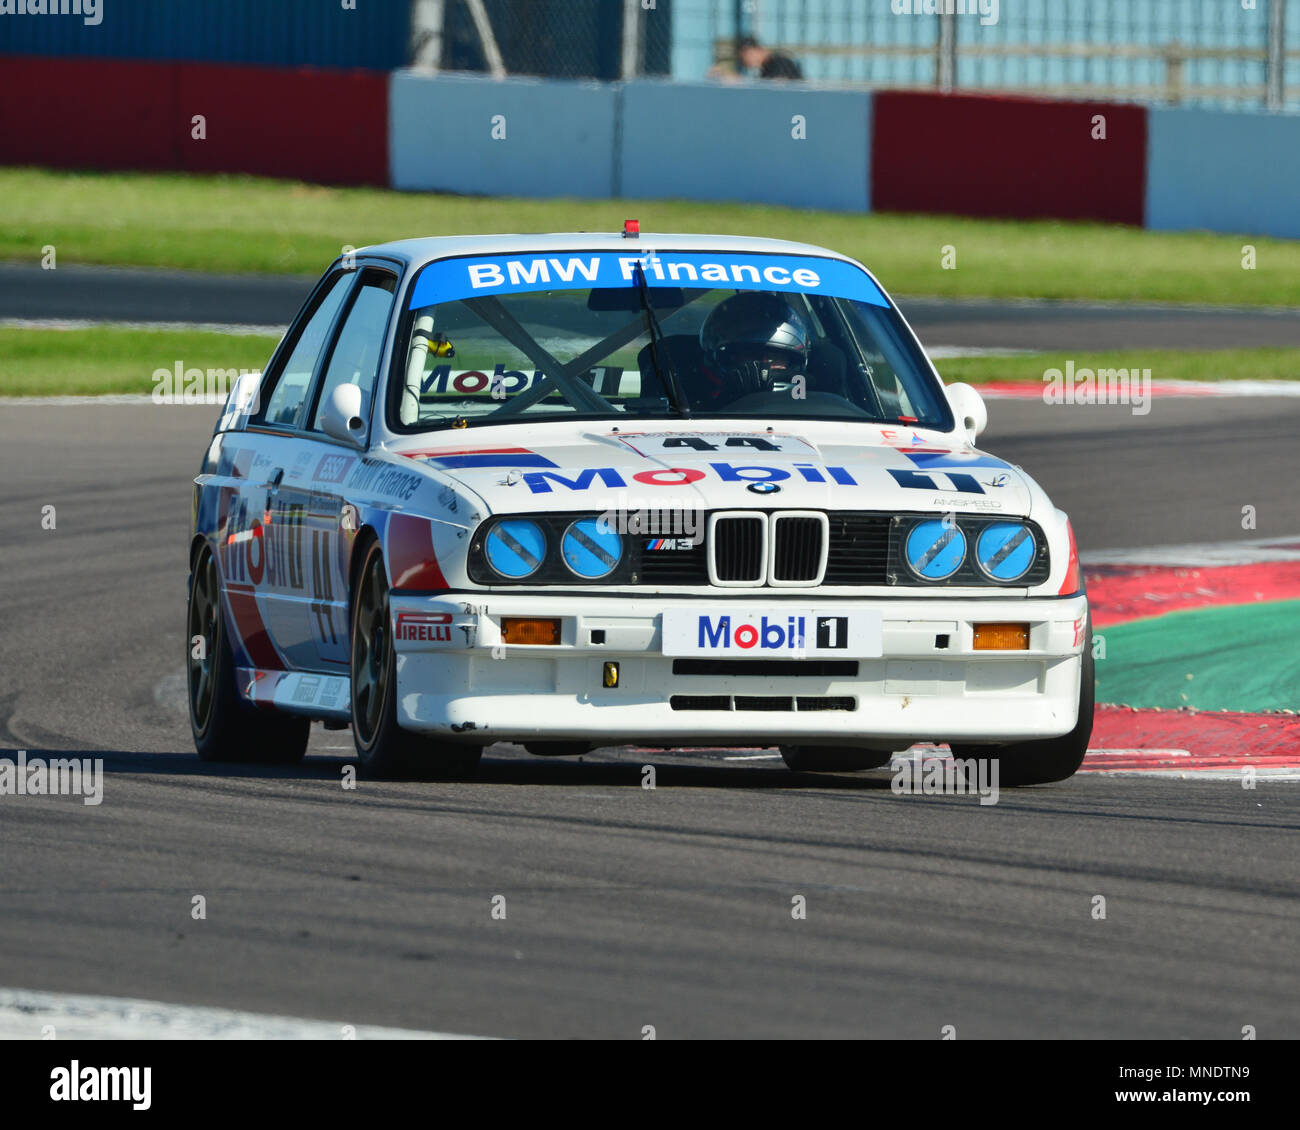 Mark Smith Bmw E30 M3 Super Touring Car Challenge 1970 2005 Touring Cars Donington Historic Festival 2018 Motor Racing Motor Sport Motorsport Stock Photo Alamy